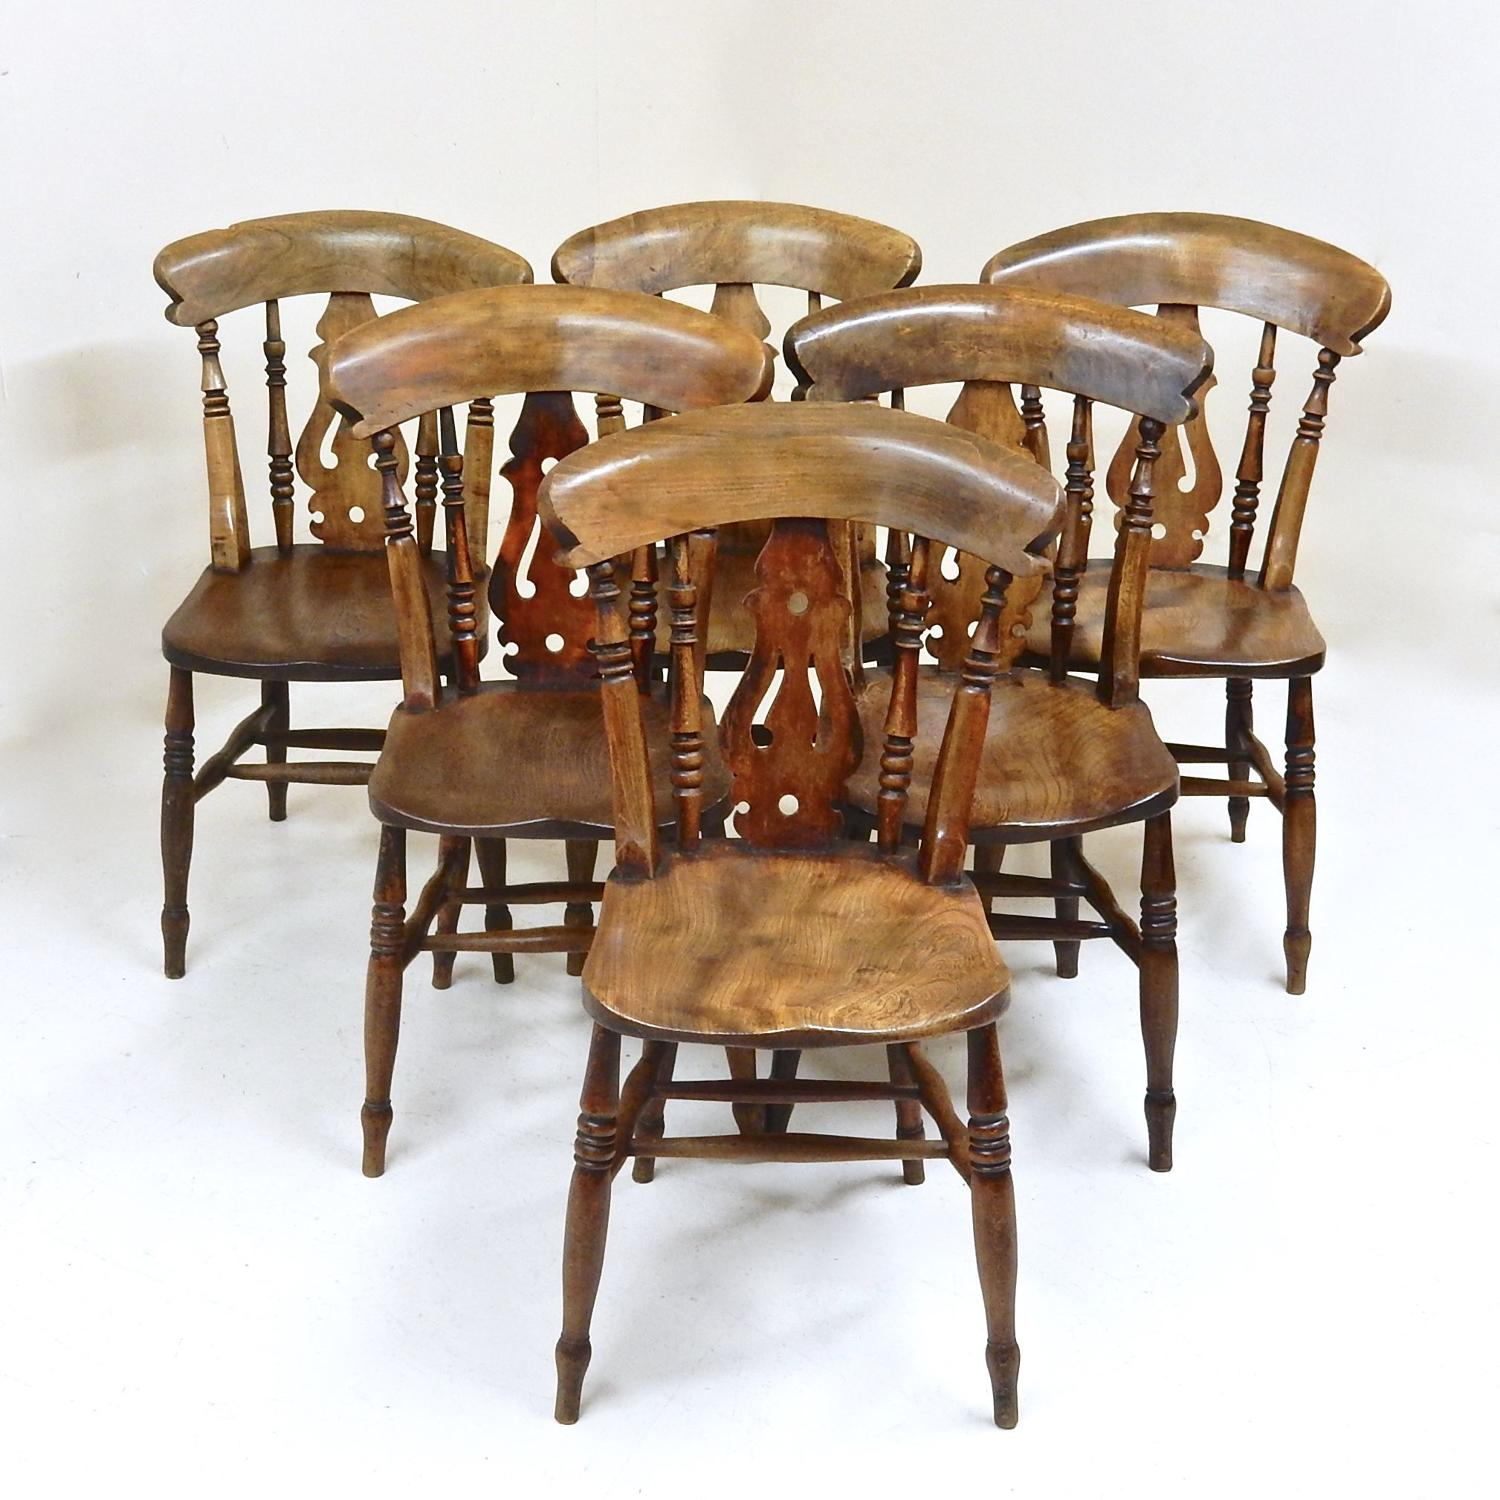 Antique Windsor Kitchen Dining Chairs x6